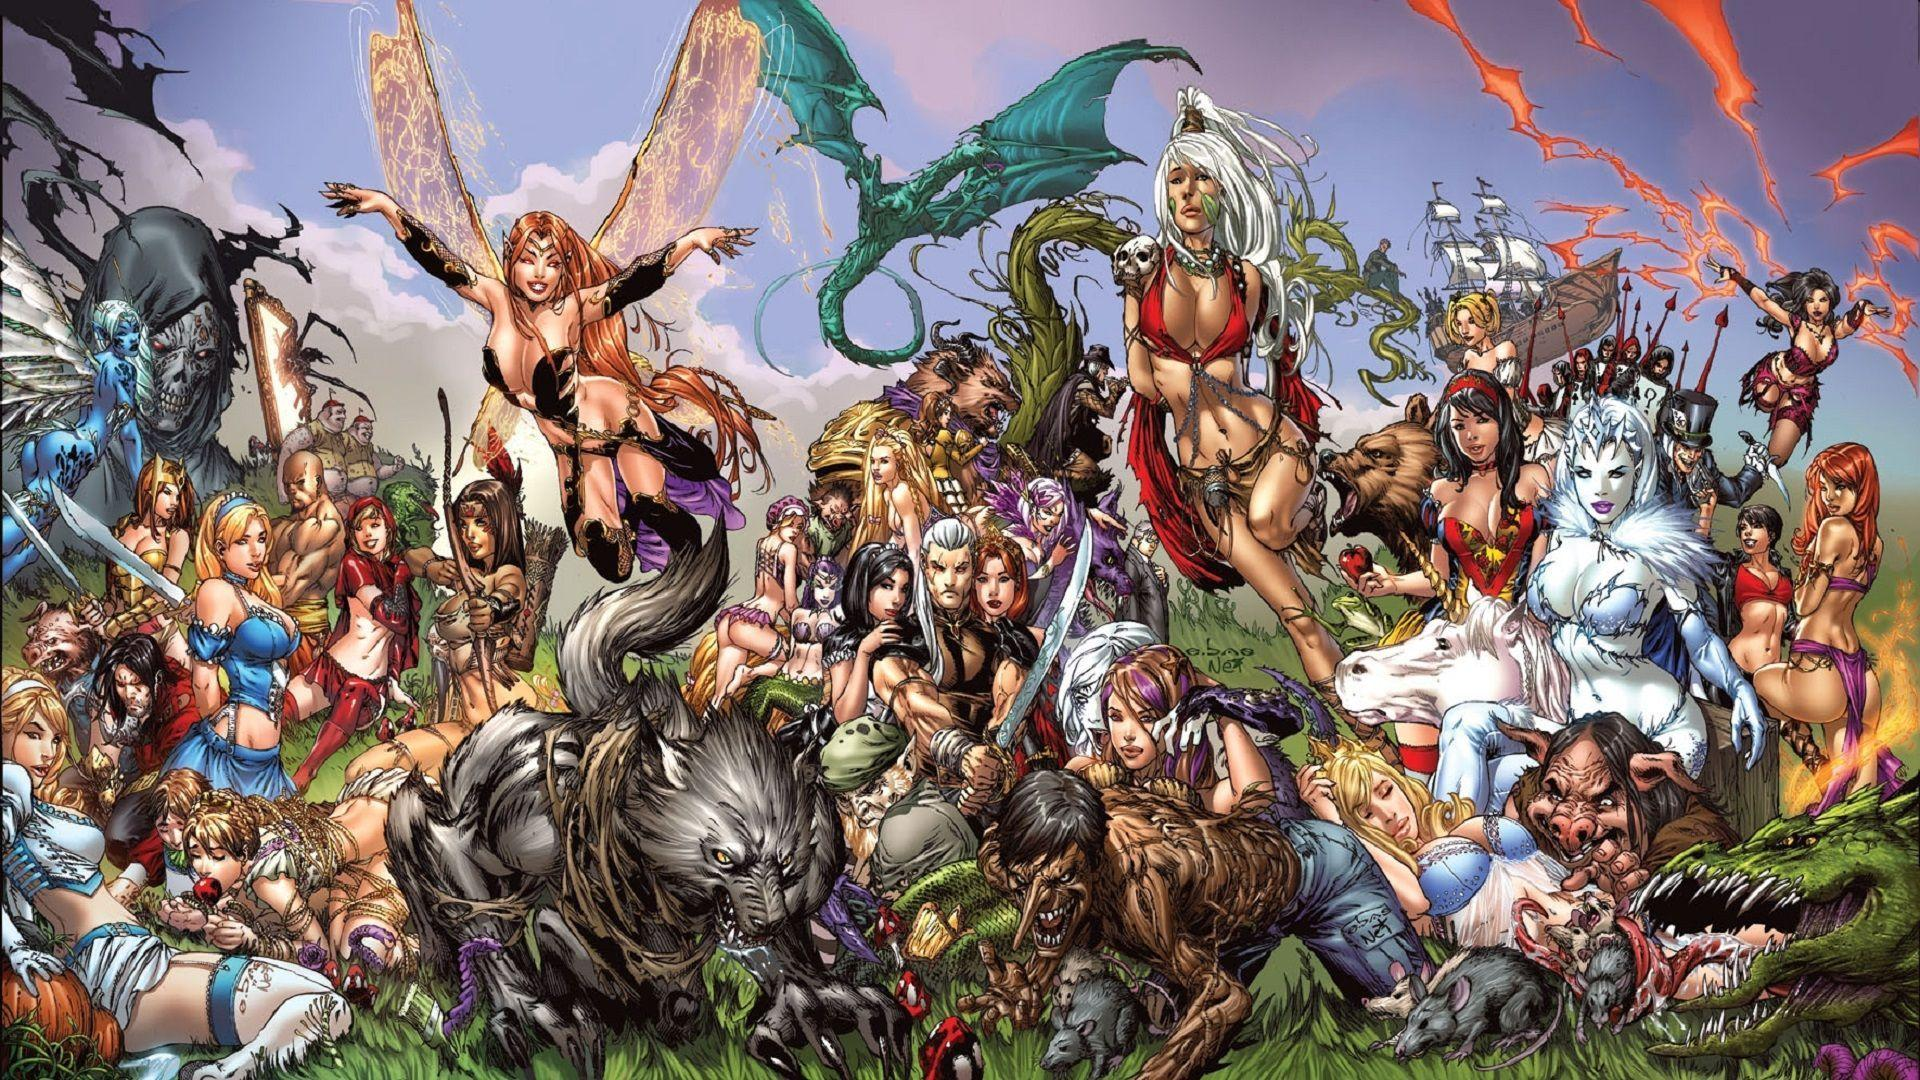 Grimm Fairy Tales Wallpapers 1920x1080